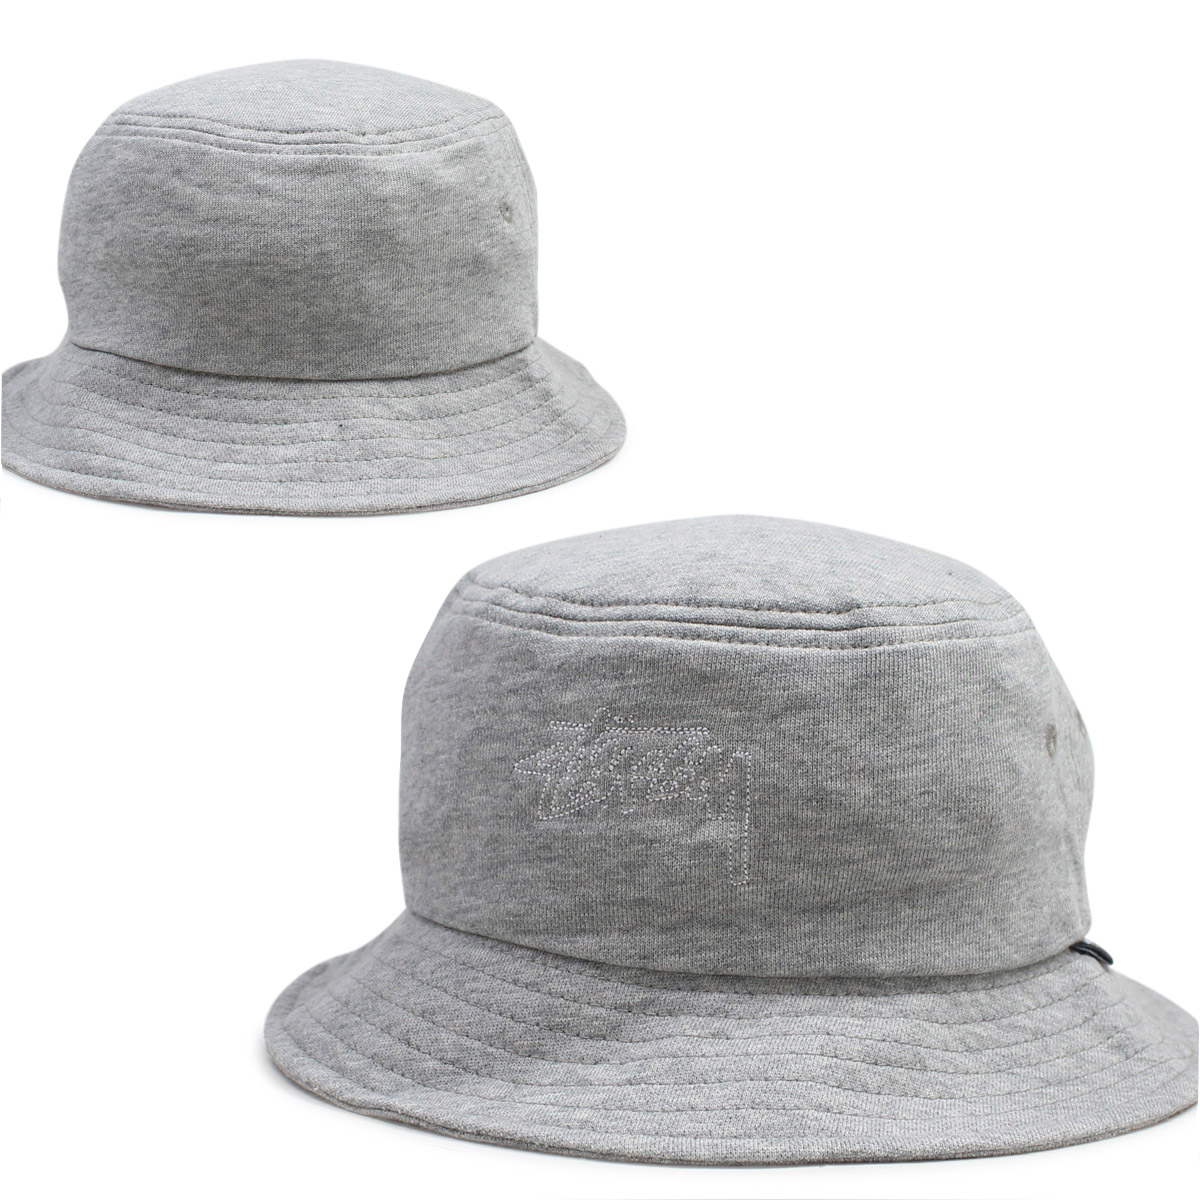 WOMEN STUSSY Stussy women Hat hats bucket Hat OUTLINE BUCKET HAT grey ladies   10 4 new in stock  c73dd5a6ff